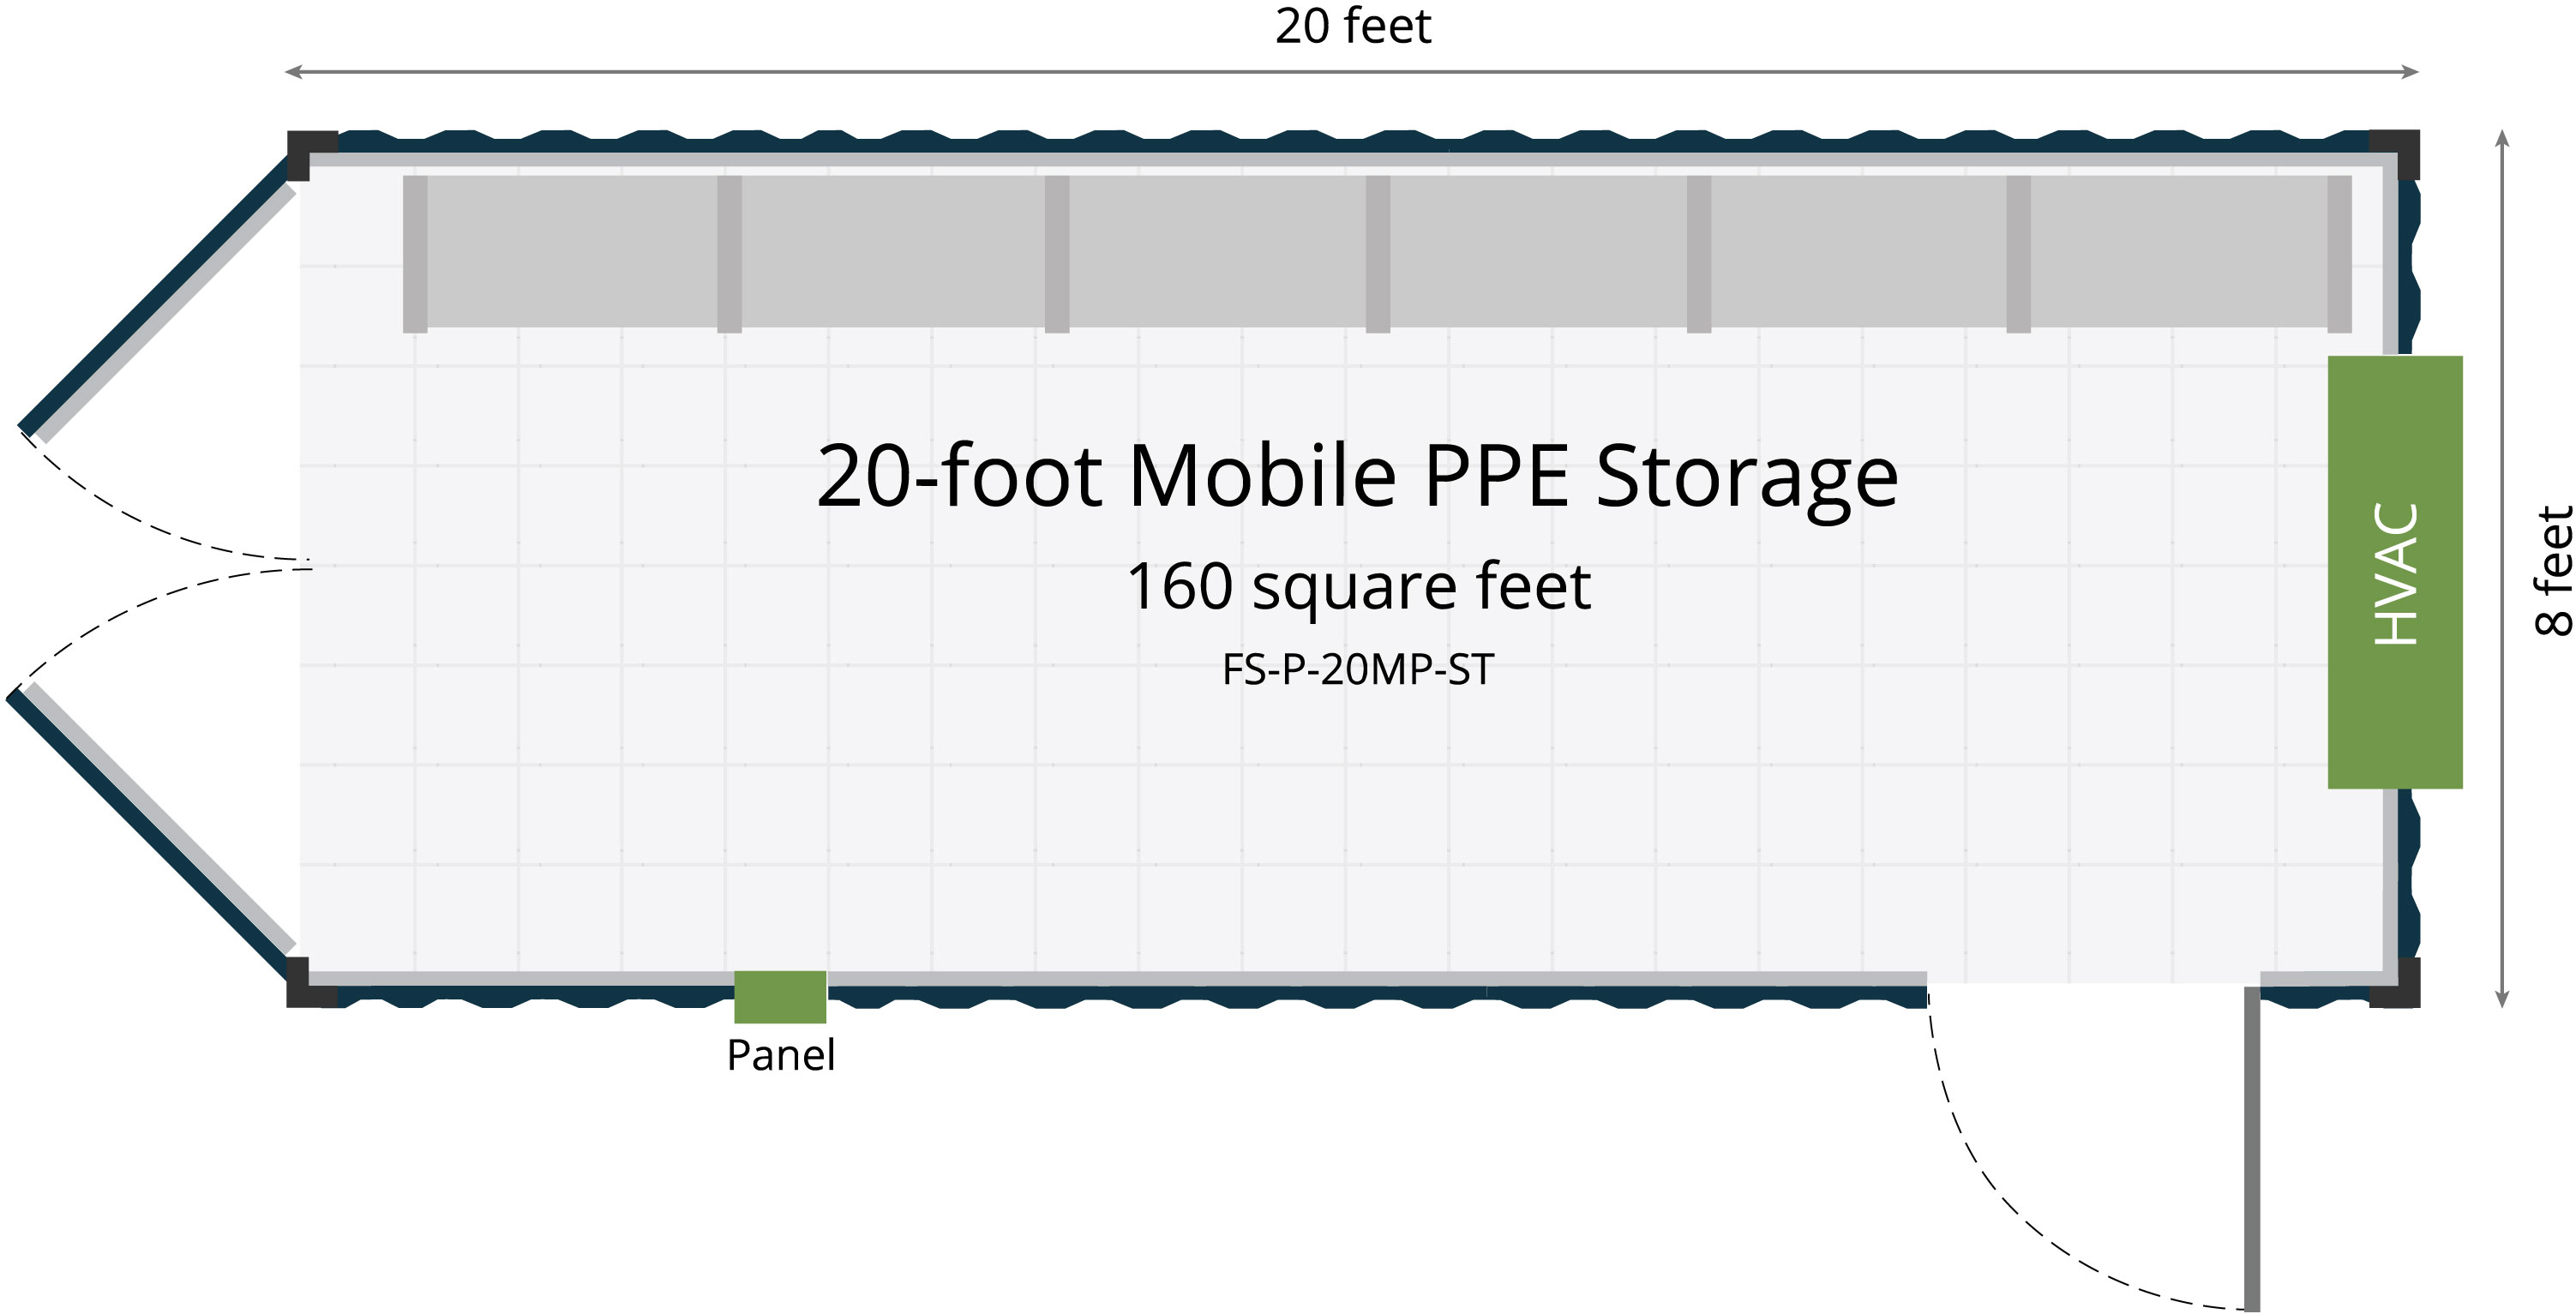 FS-P-20MP-ST_Floorplan